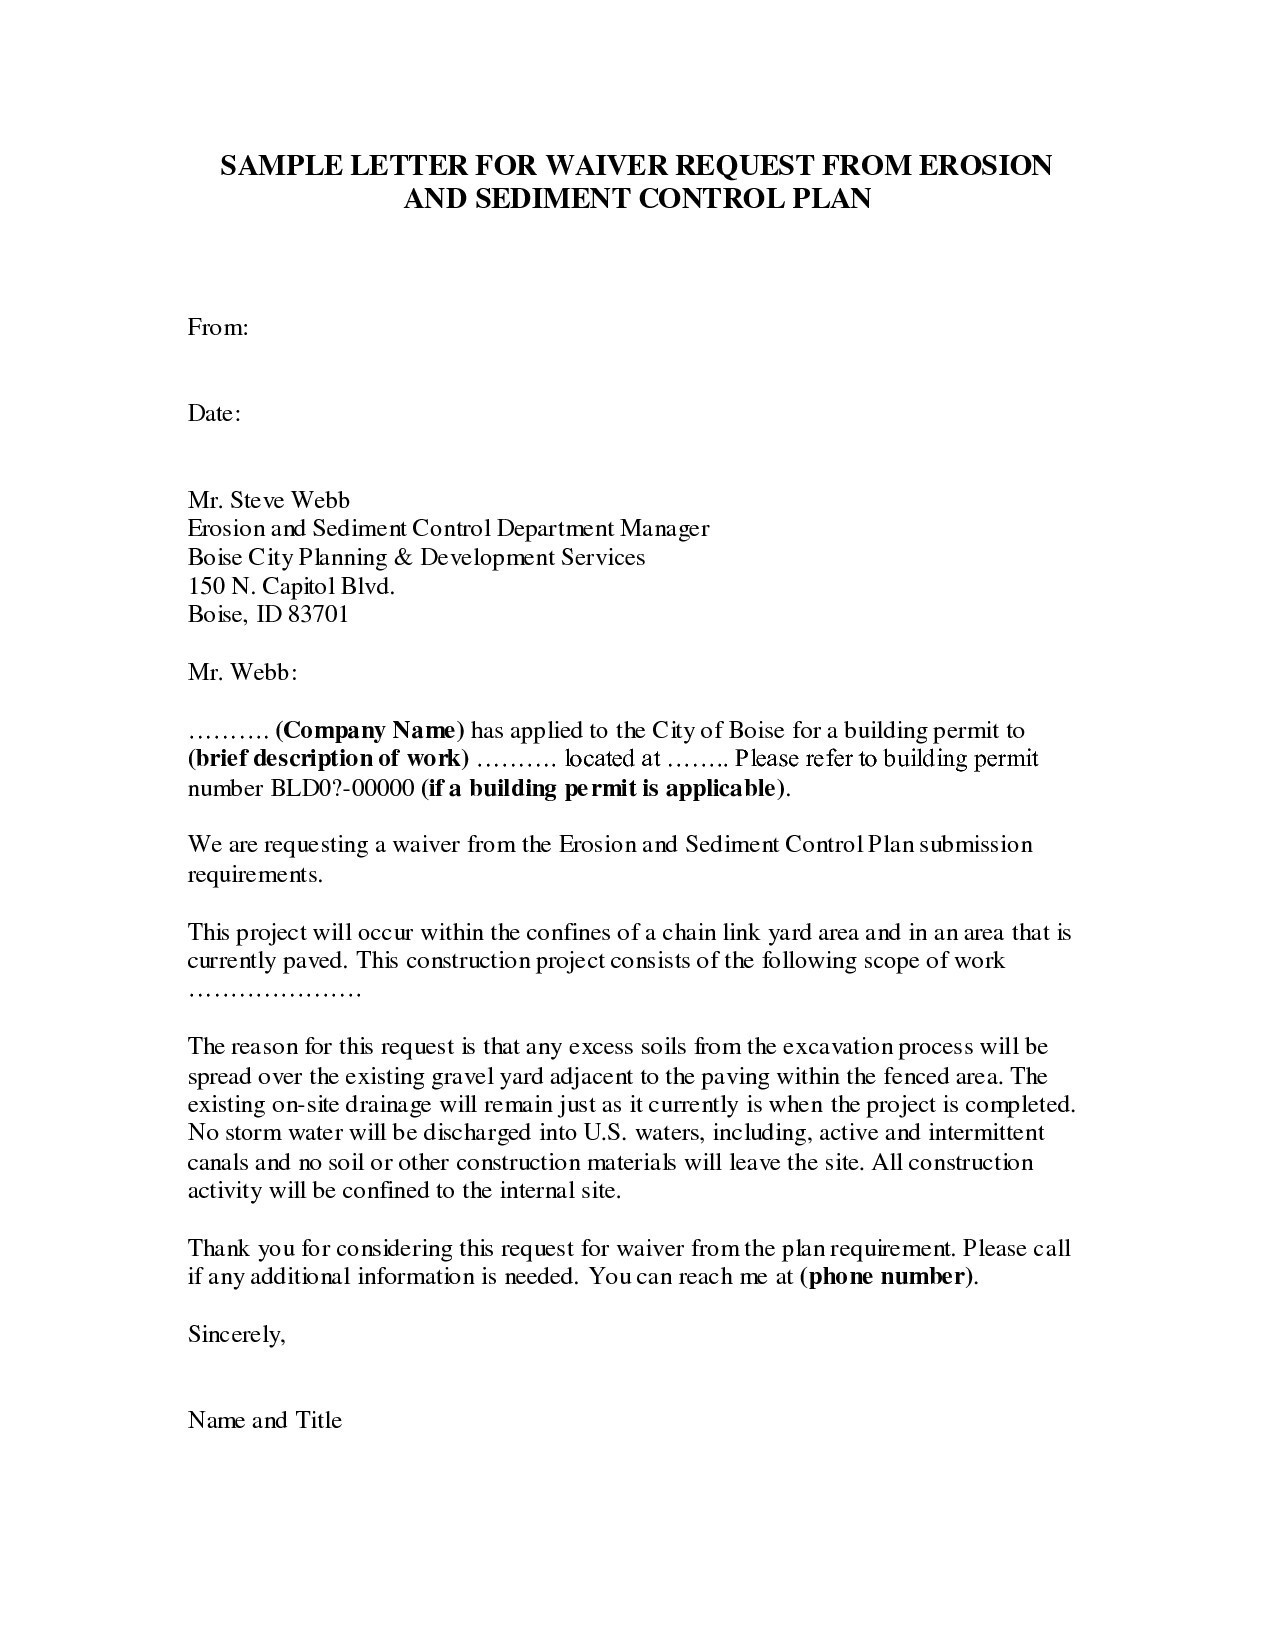 Cancellation letter template collection letter templates cancellation letter template maxwellsz